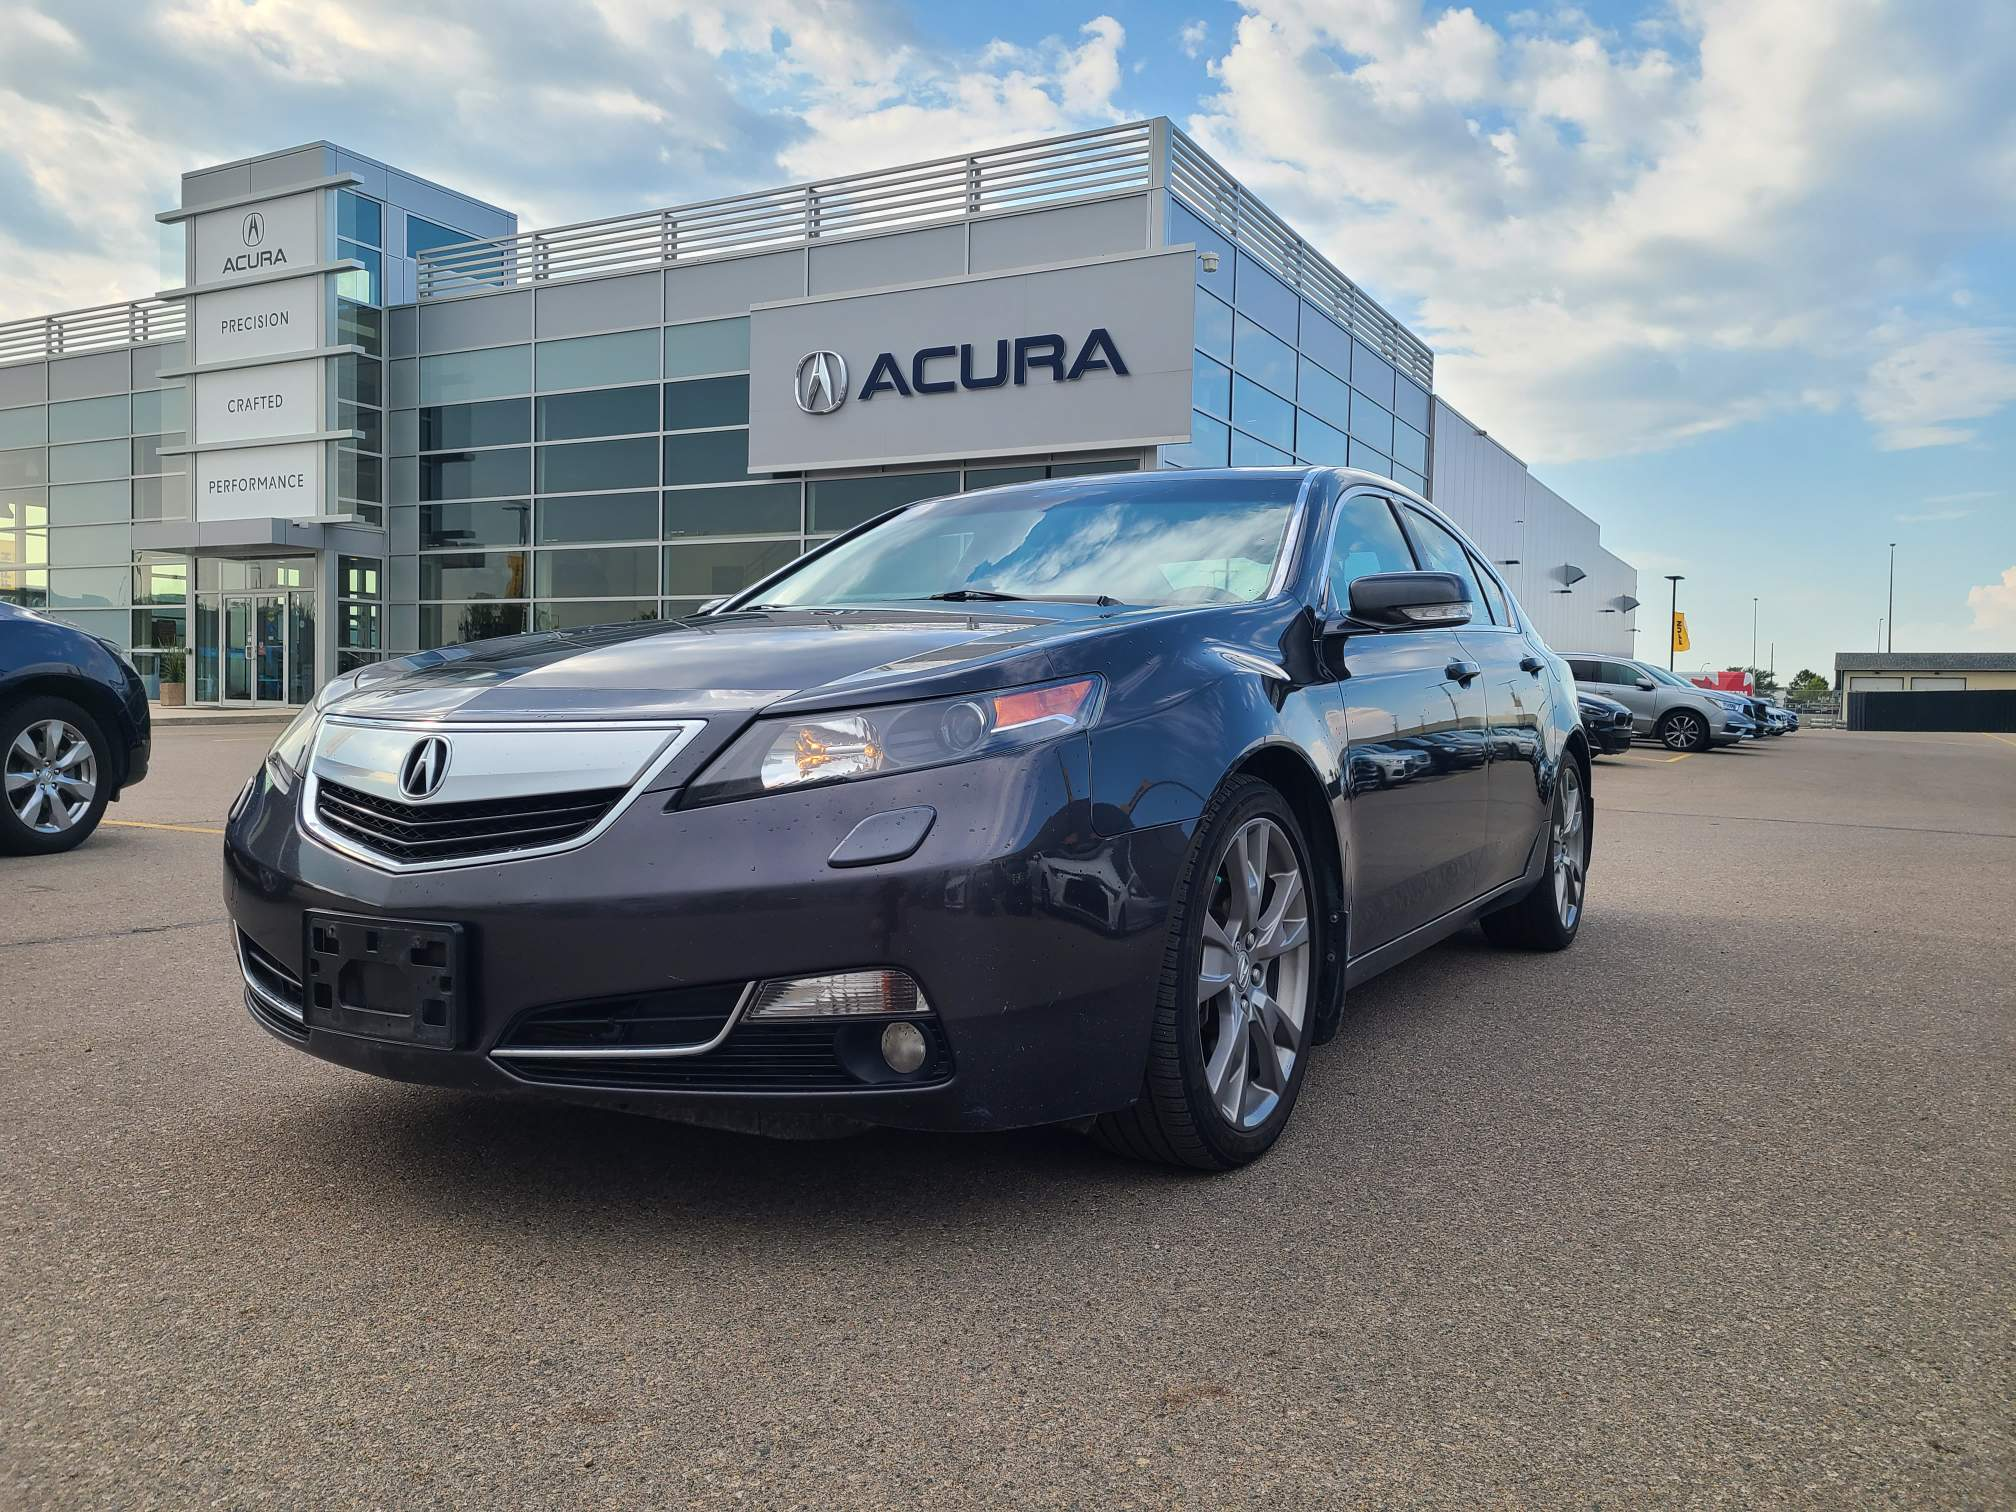 used 2014 Acura TL car, priced at $15,988